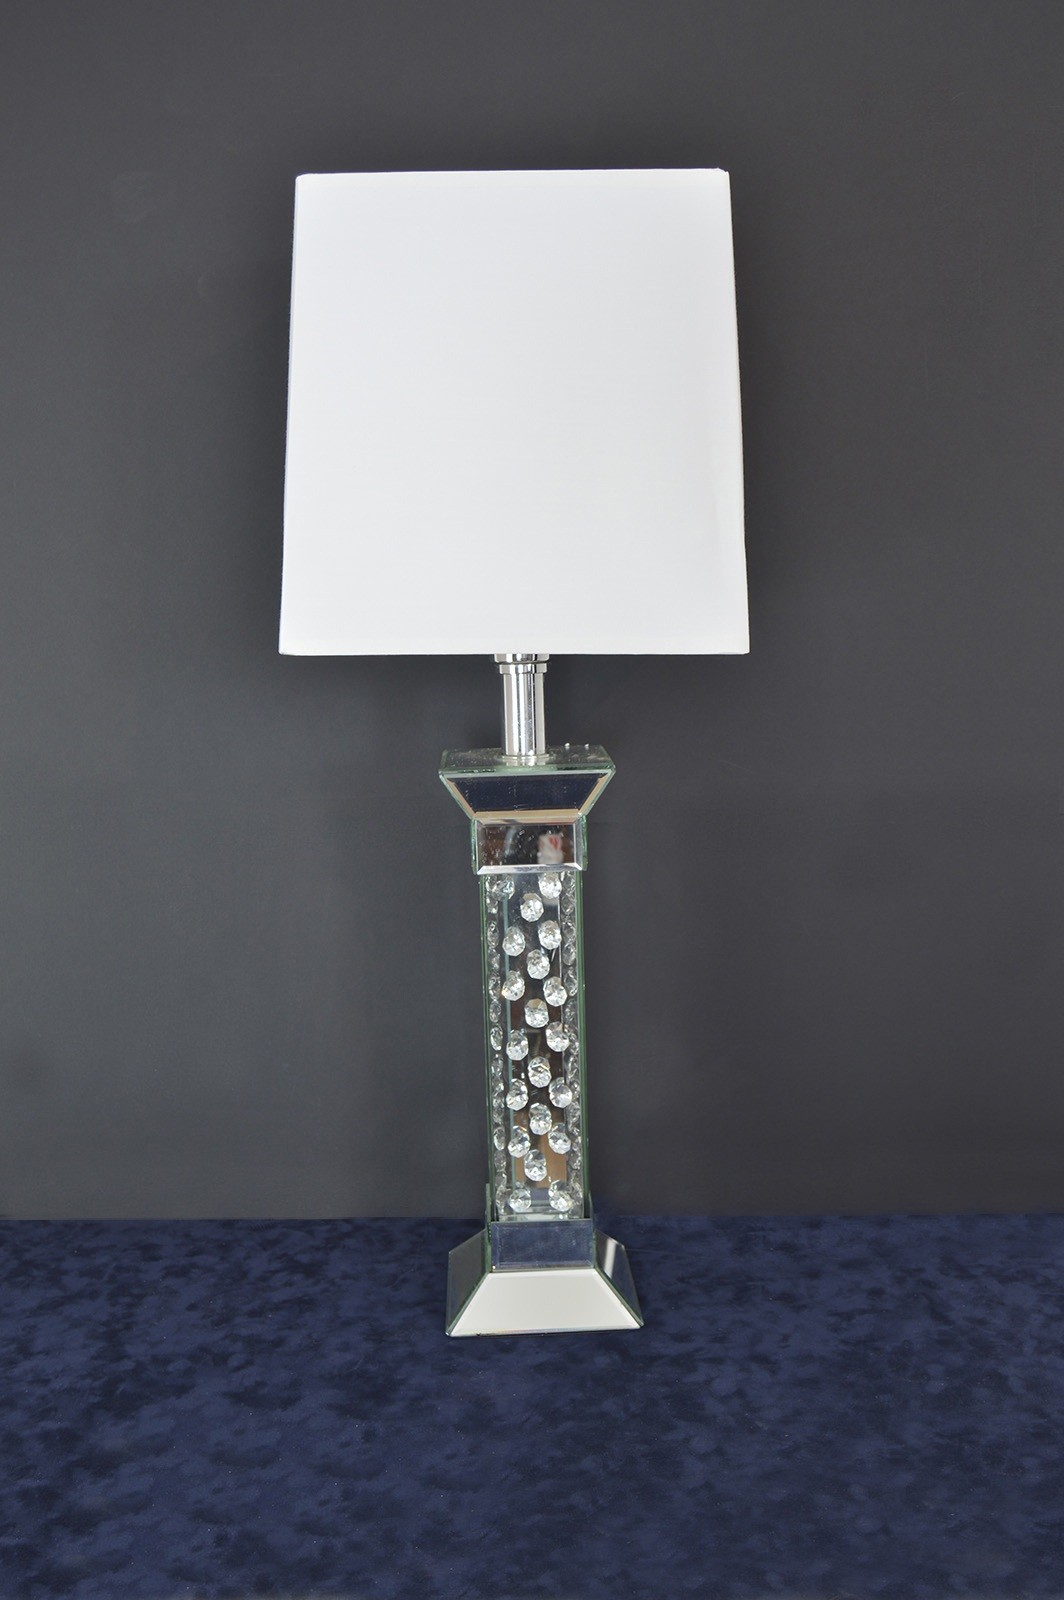 mirror lamp. history of mirrored table lamps mirror lamp